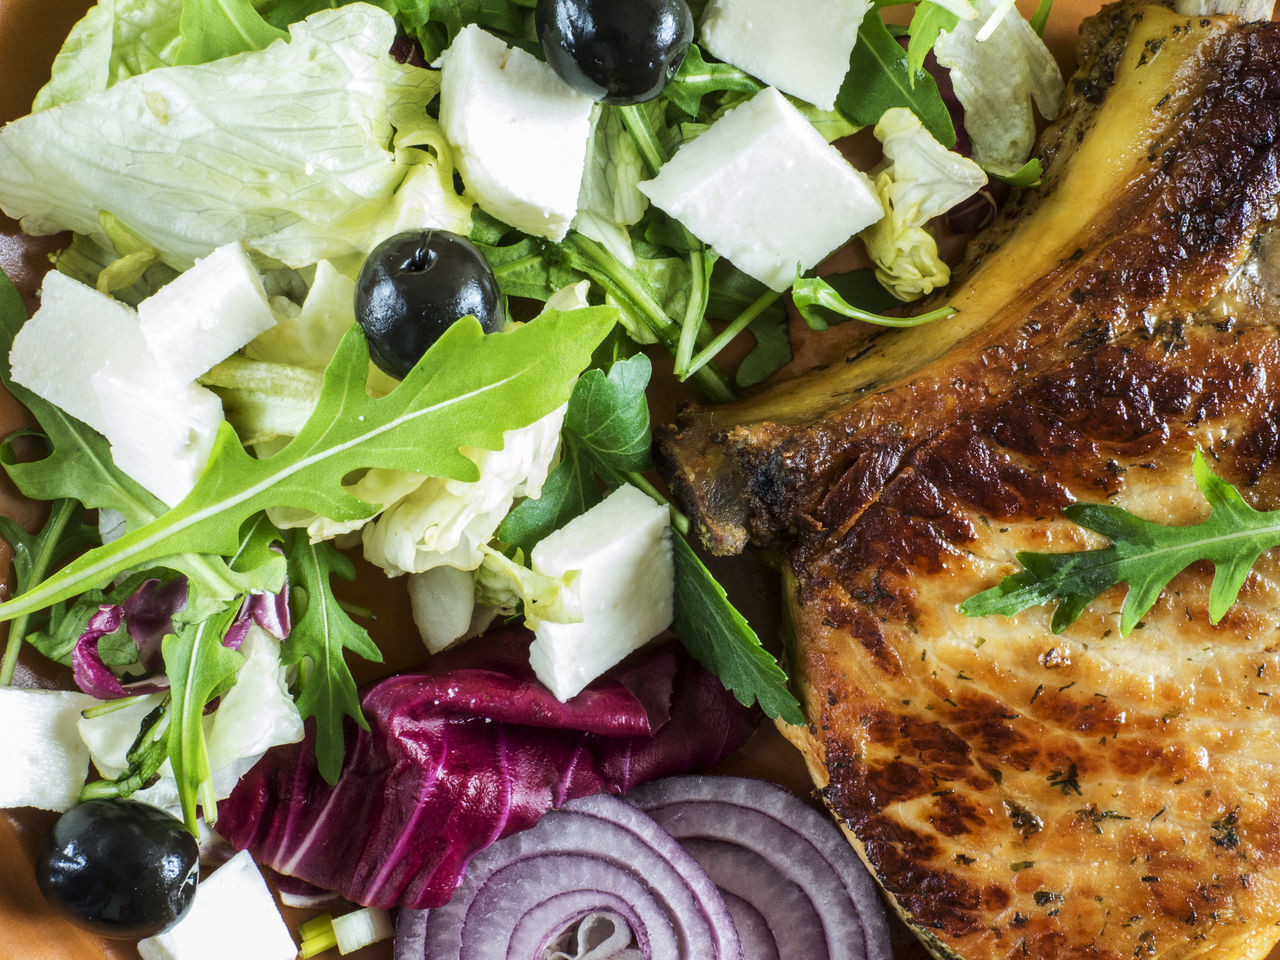 Roasted pork chop on a plate with a green salad, red onion, soft cheese and olives Cheese Chop Close-up Day Food Food And Drink Freshness Greek Salad Green Healthy Eating Indoors  Leaf Leaf Vegetable Lettuce No People Olives Onion Plate Pork Relaxing Roasted Salad Soft